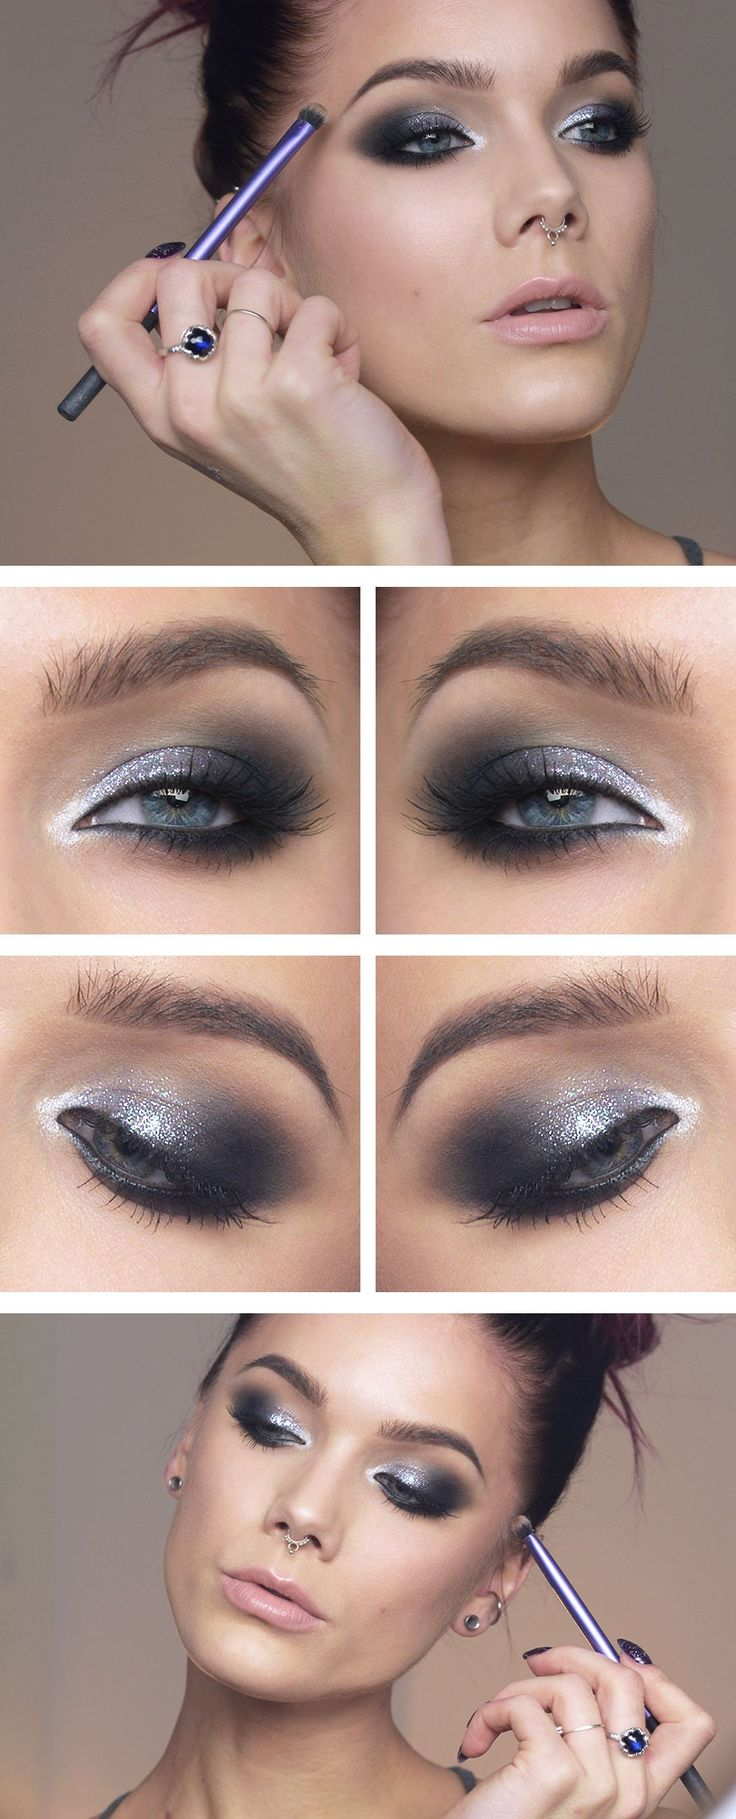 Too faced shadow insurance MAC eyeshadow Carbon NYX Slide on eyeliner Jet black Maybelline color tattoo Infinite White NYX Liquid crystal liner Crystal Pewter Oriflame studio artist lipstick Nude suede NARS Blush Orgasm Anastasia Contour kit